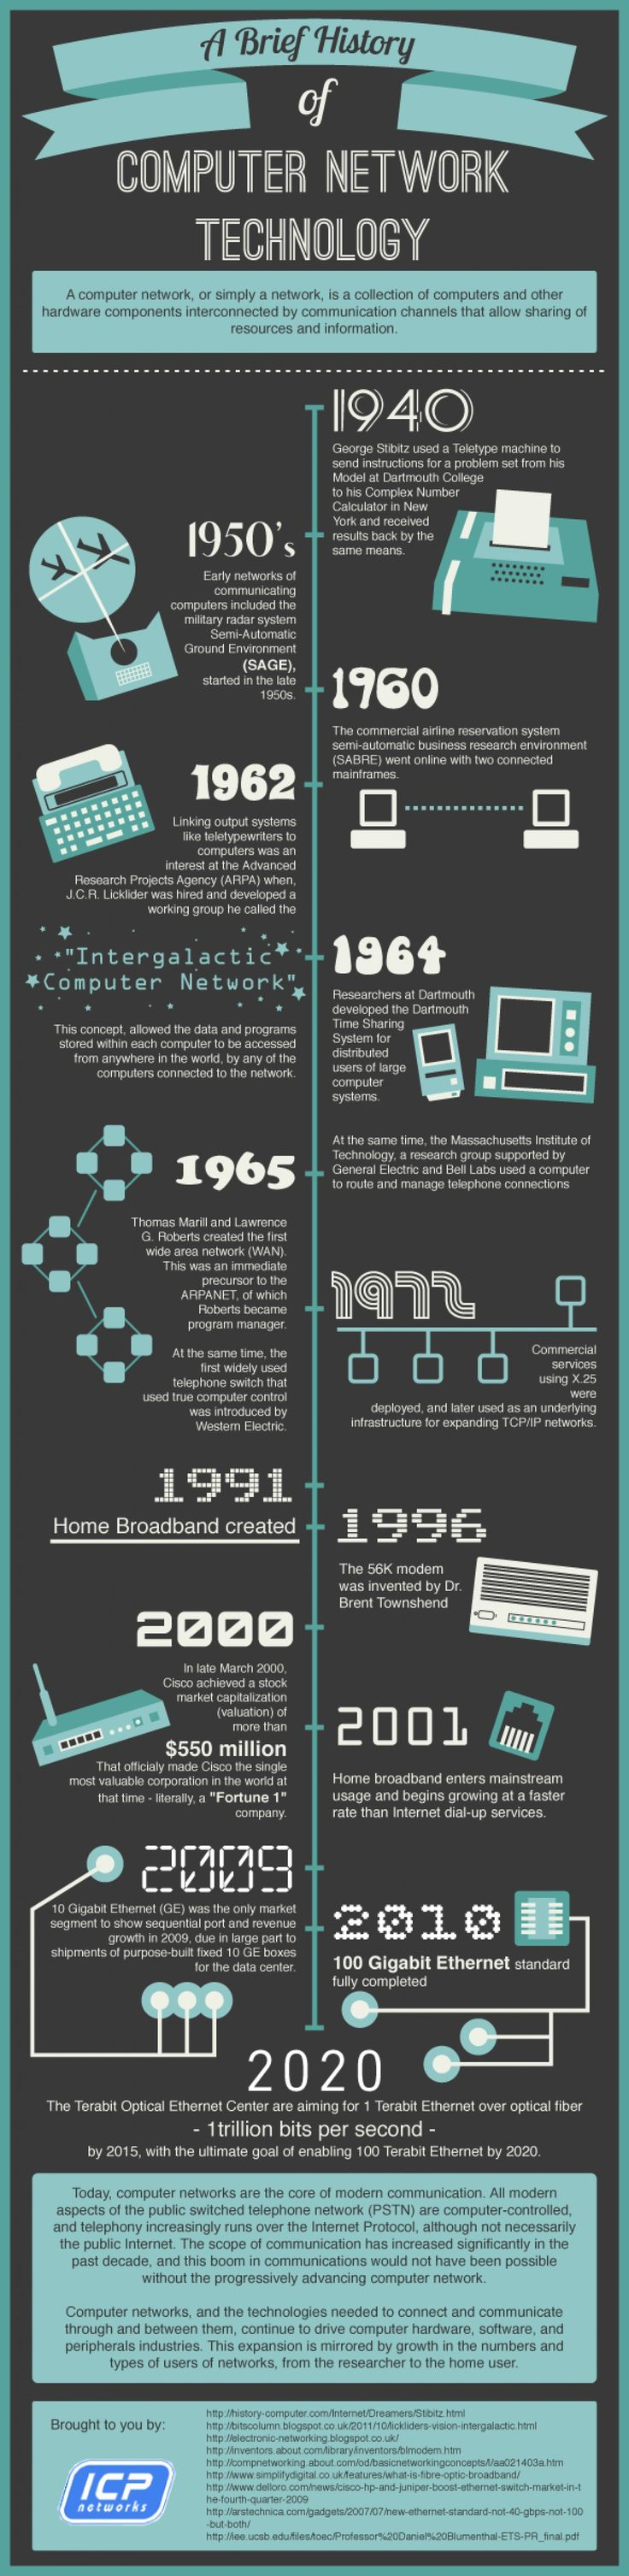 A Brief History Of Computer Network Technology Infographic